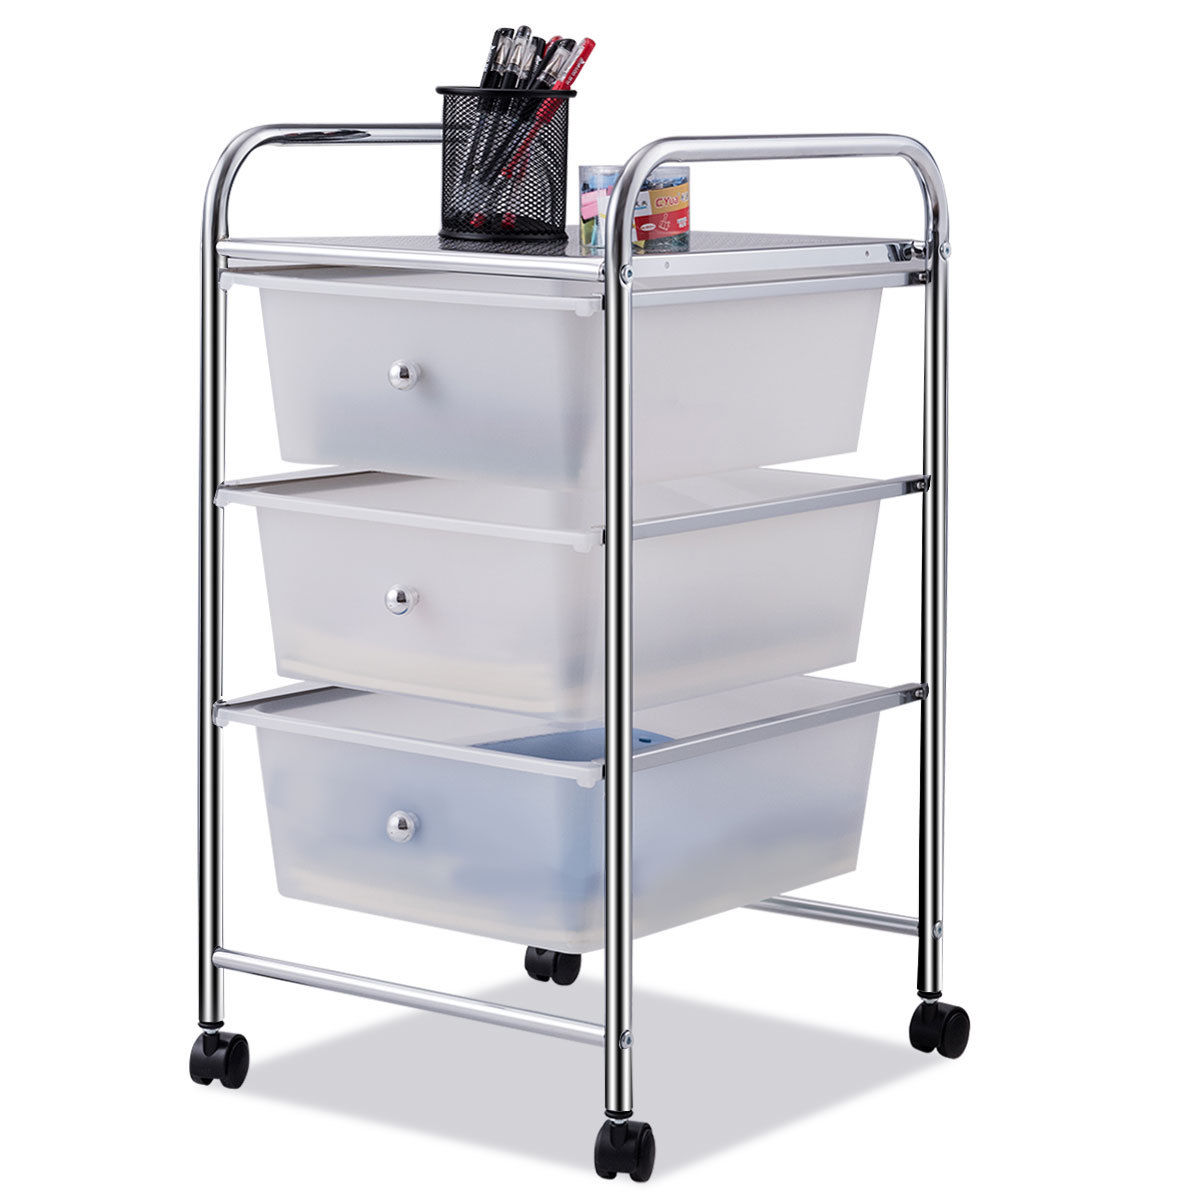 A Frame Trolley Ghp Steel Frame Pp 3 Drawer Trolley Cart With Swivel Wheels Sliding Drawers